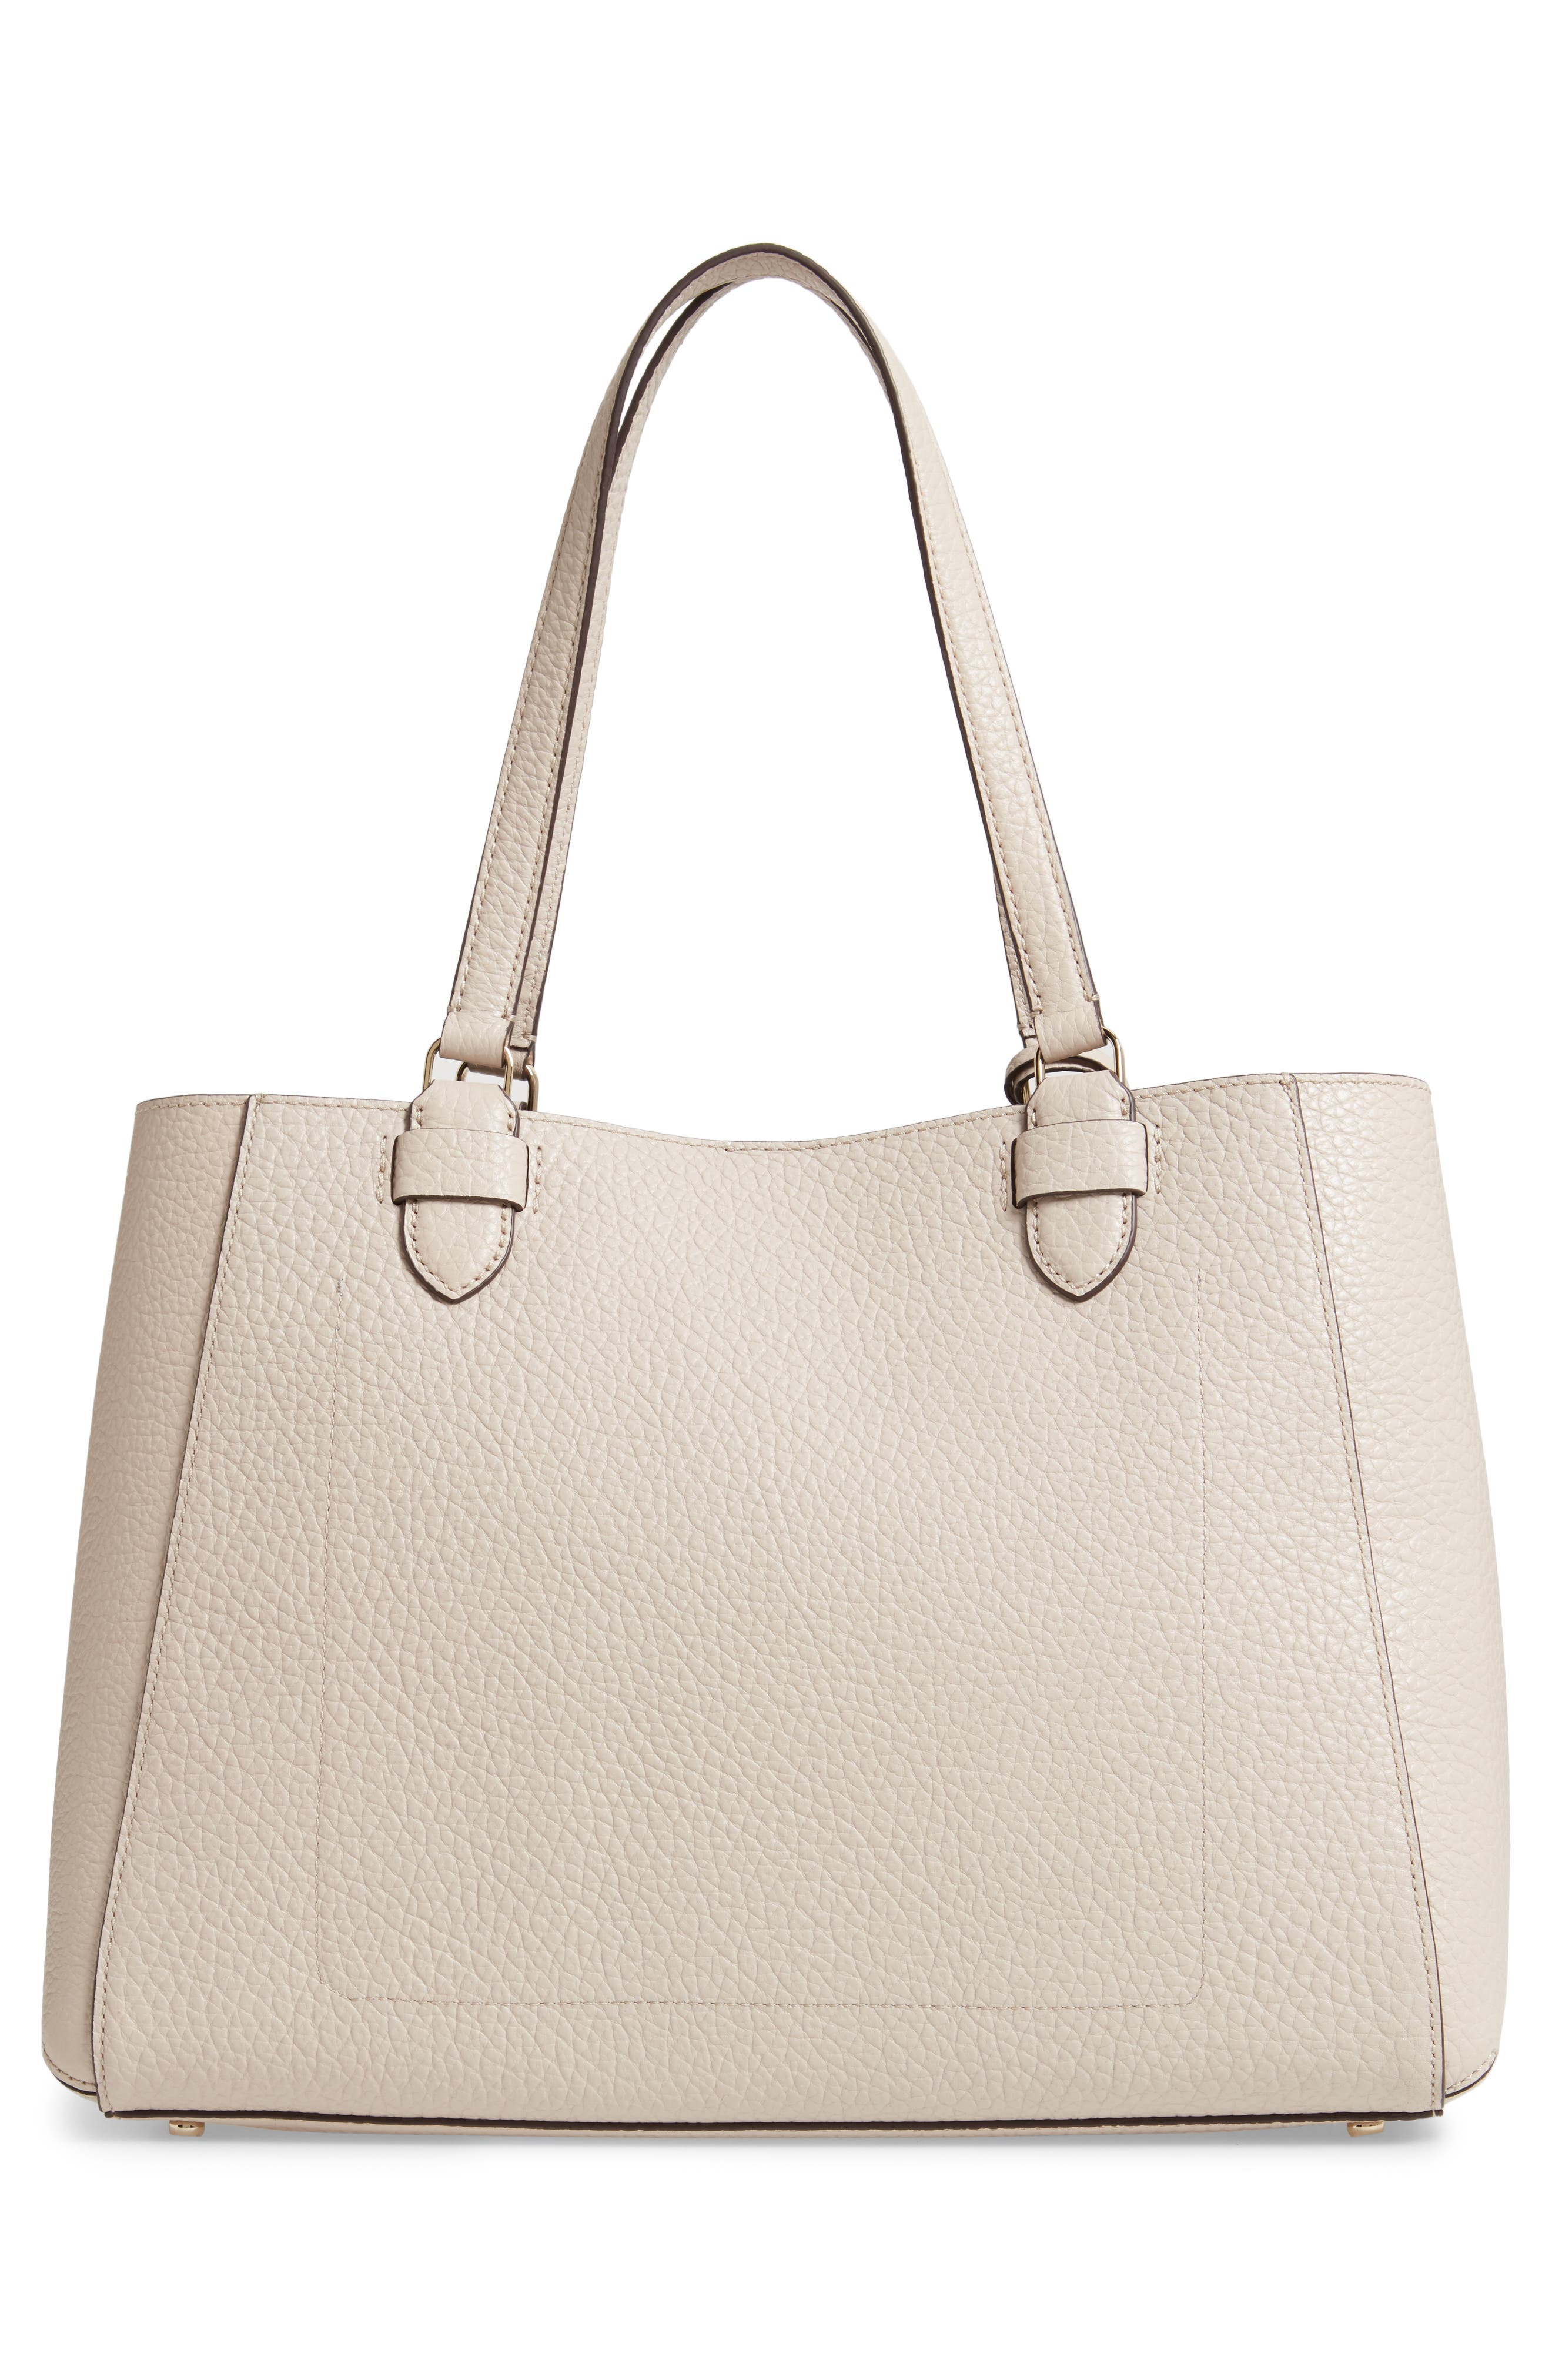 carter street - tyler leather tote,                             Alternate thumbnail 11, color,